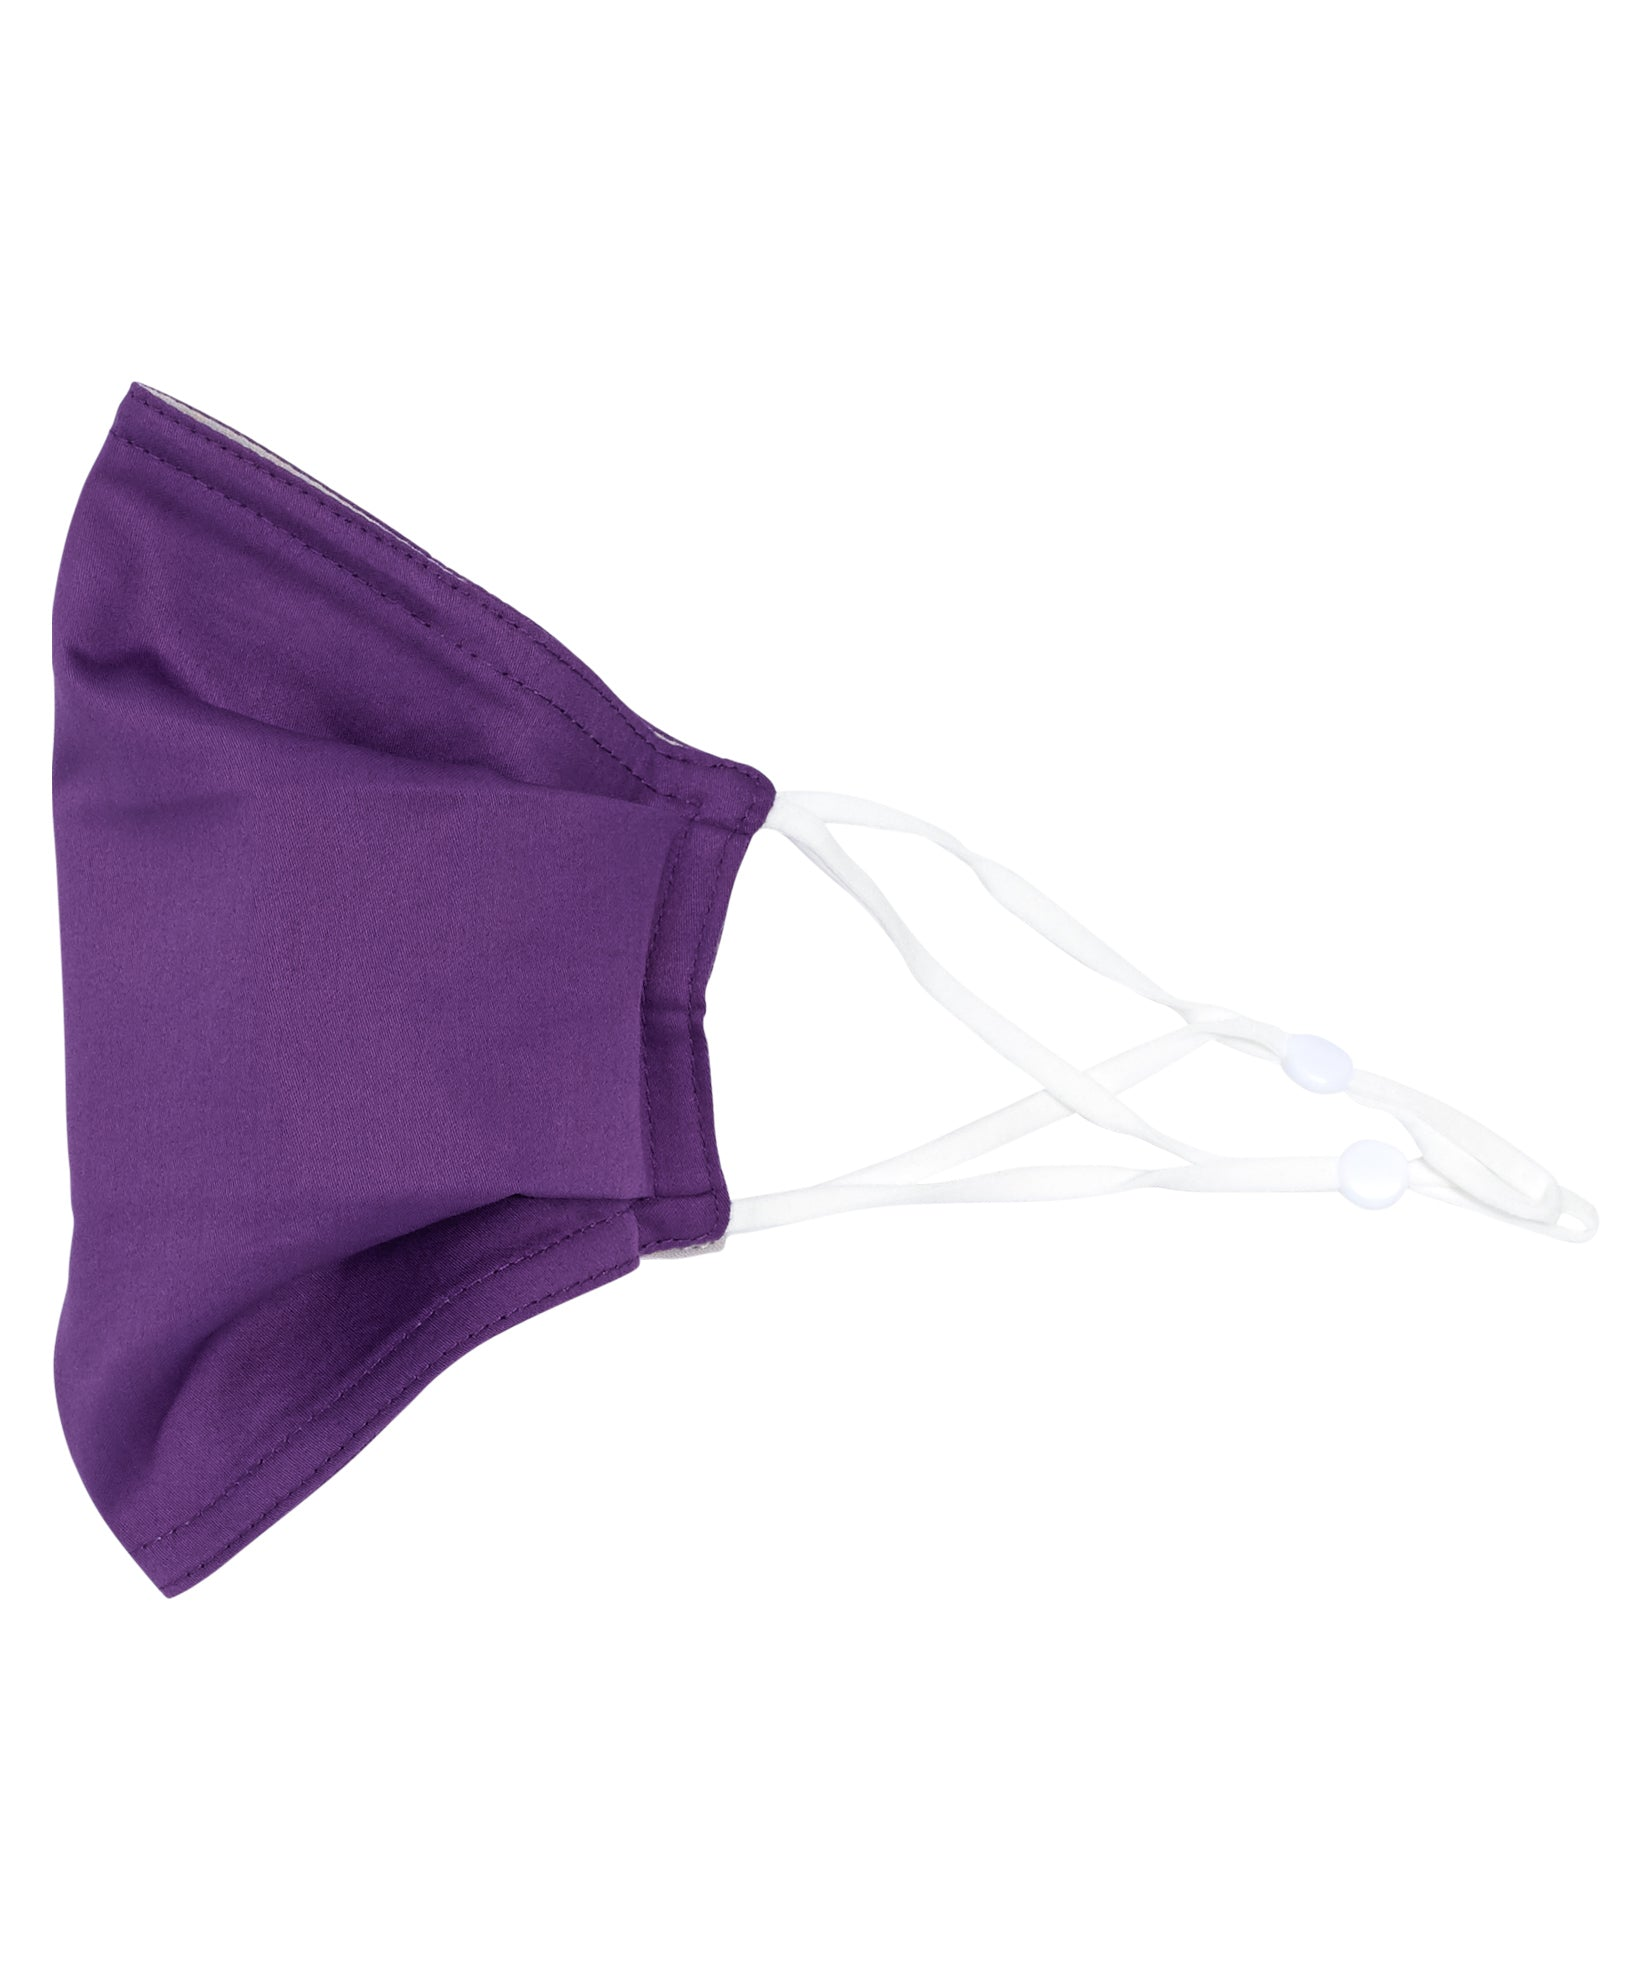 Purple - Solid Cooling Mask